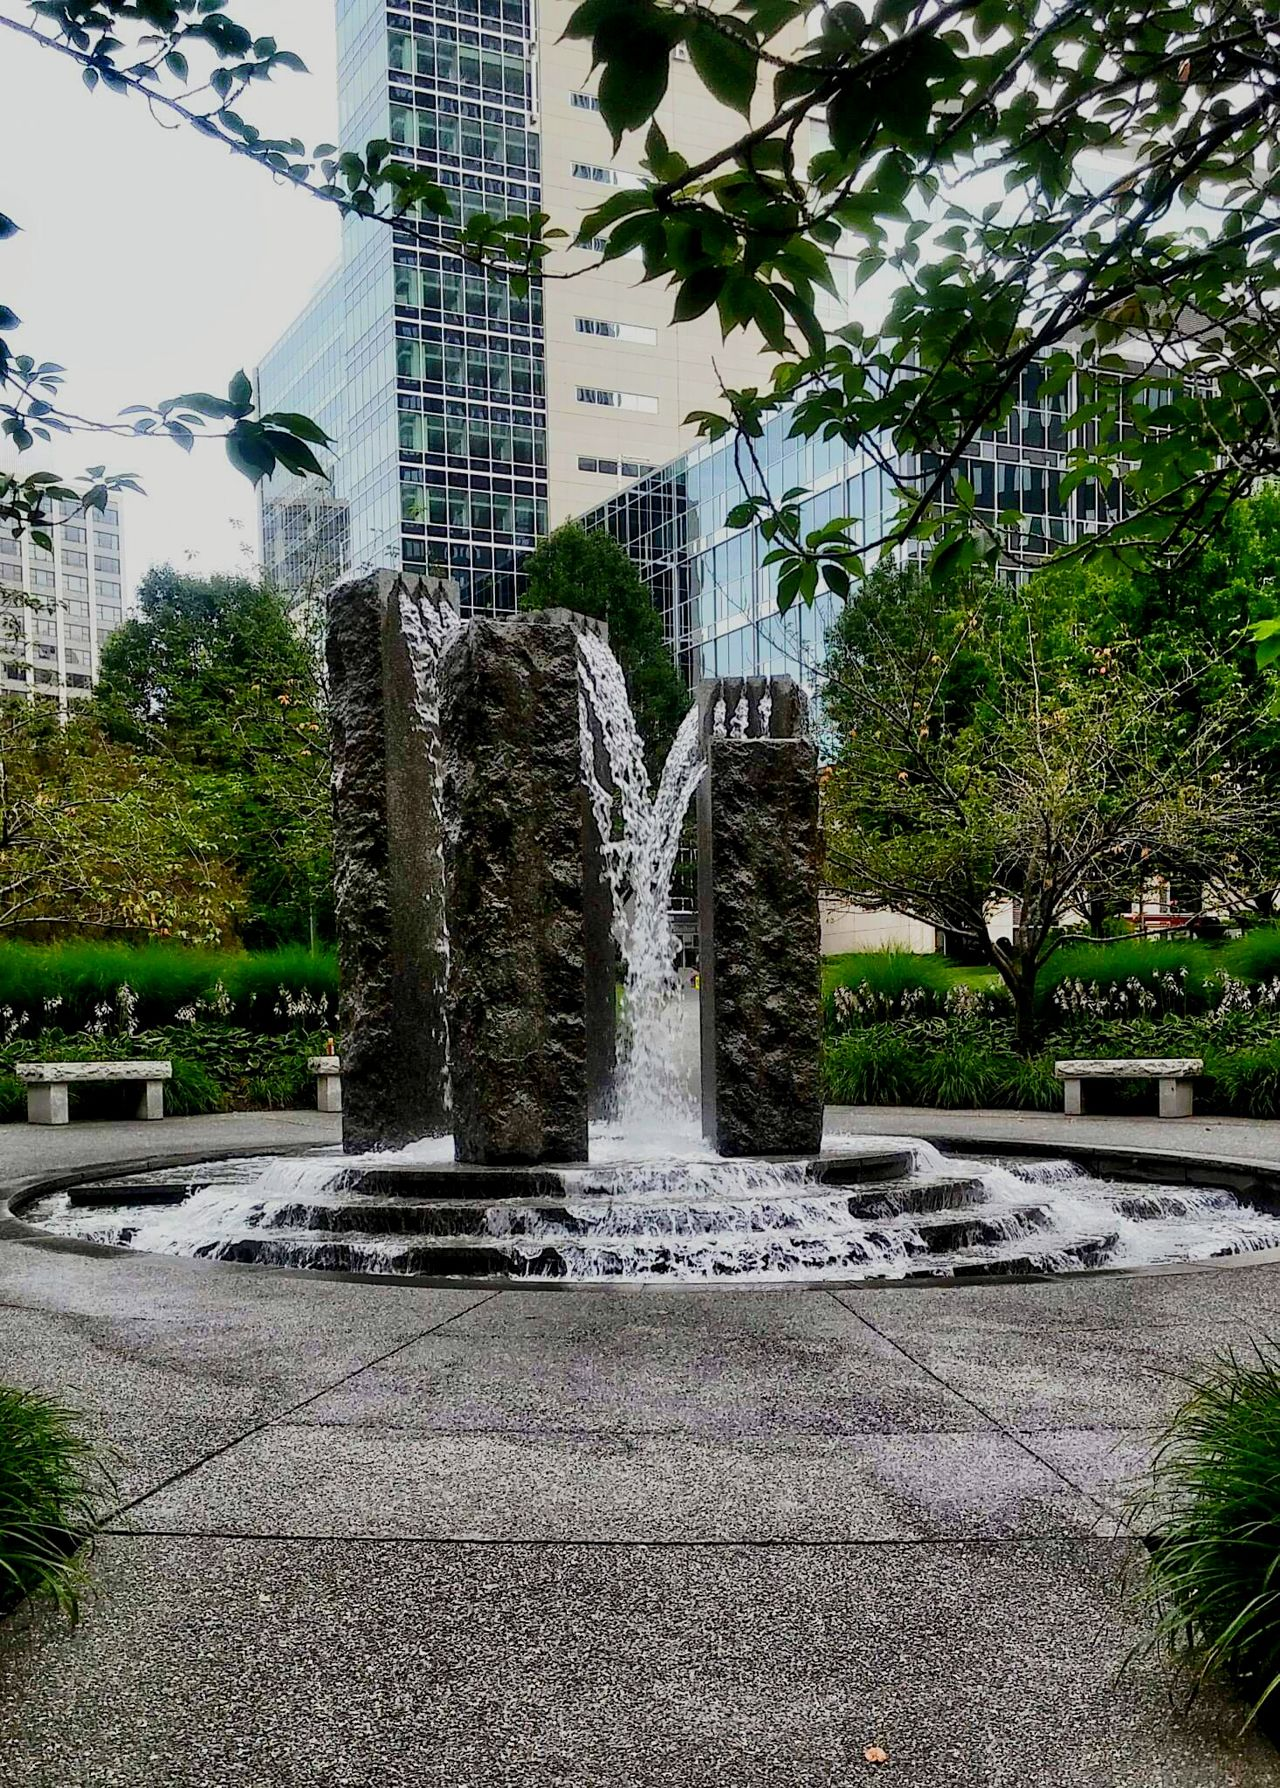 Pittsburgh Cityscapes Waterscape Water And Stones Urban Stones, Water, And Shrubbery Stones & Water Stonesculptures Downtown Pittsburgh Water Fountain Urbanscape